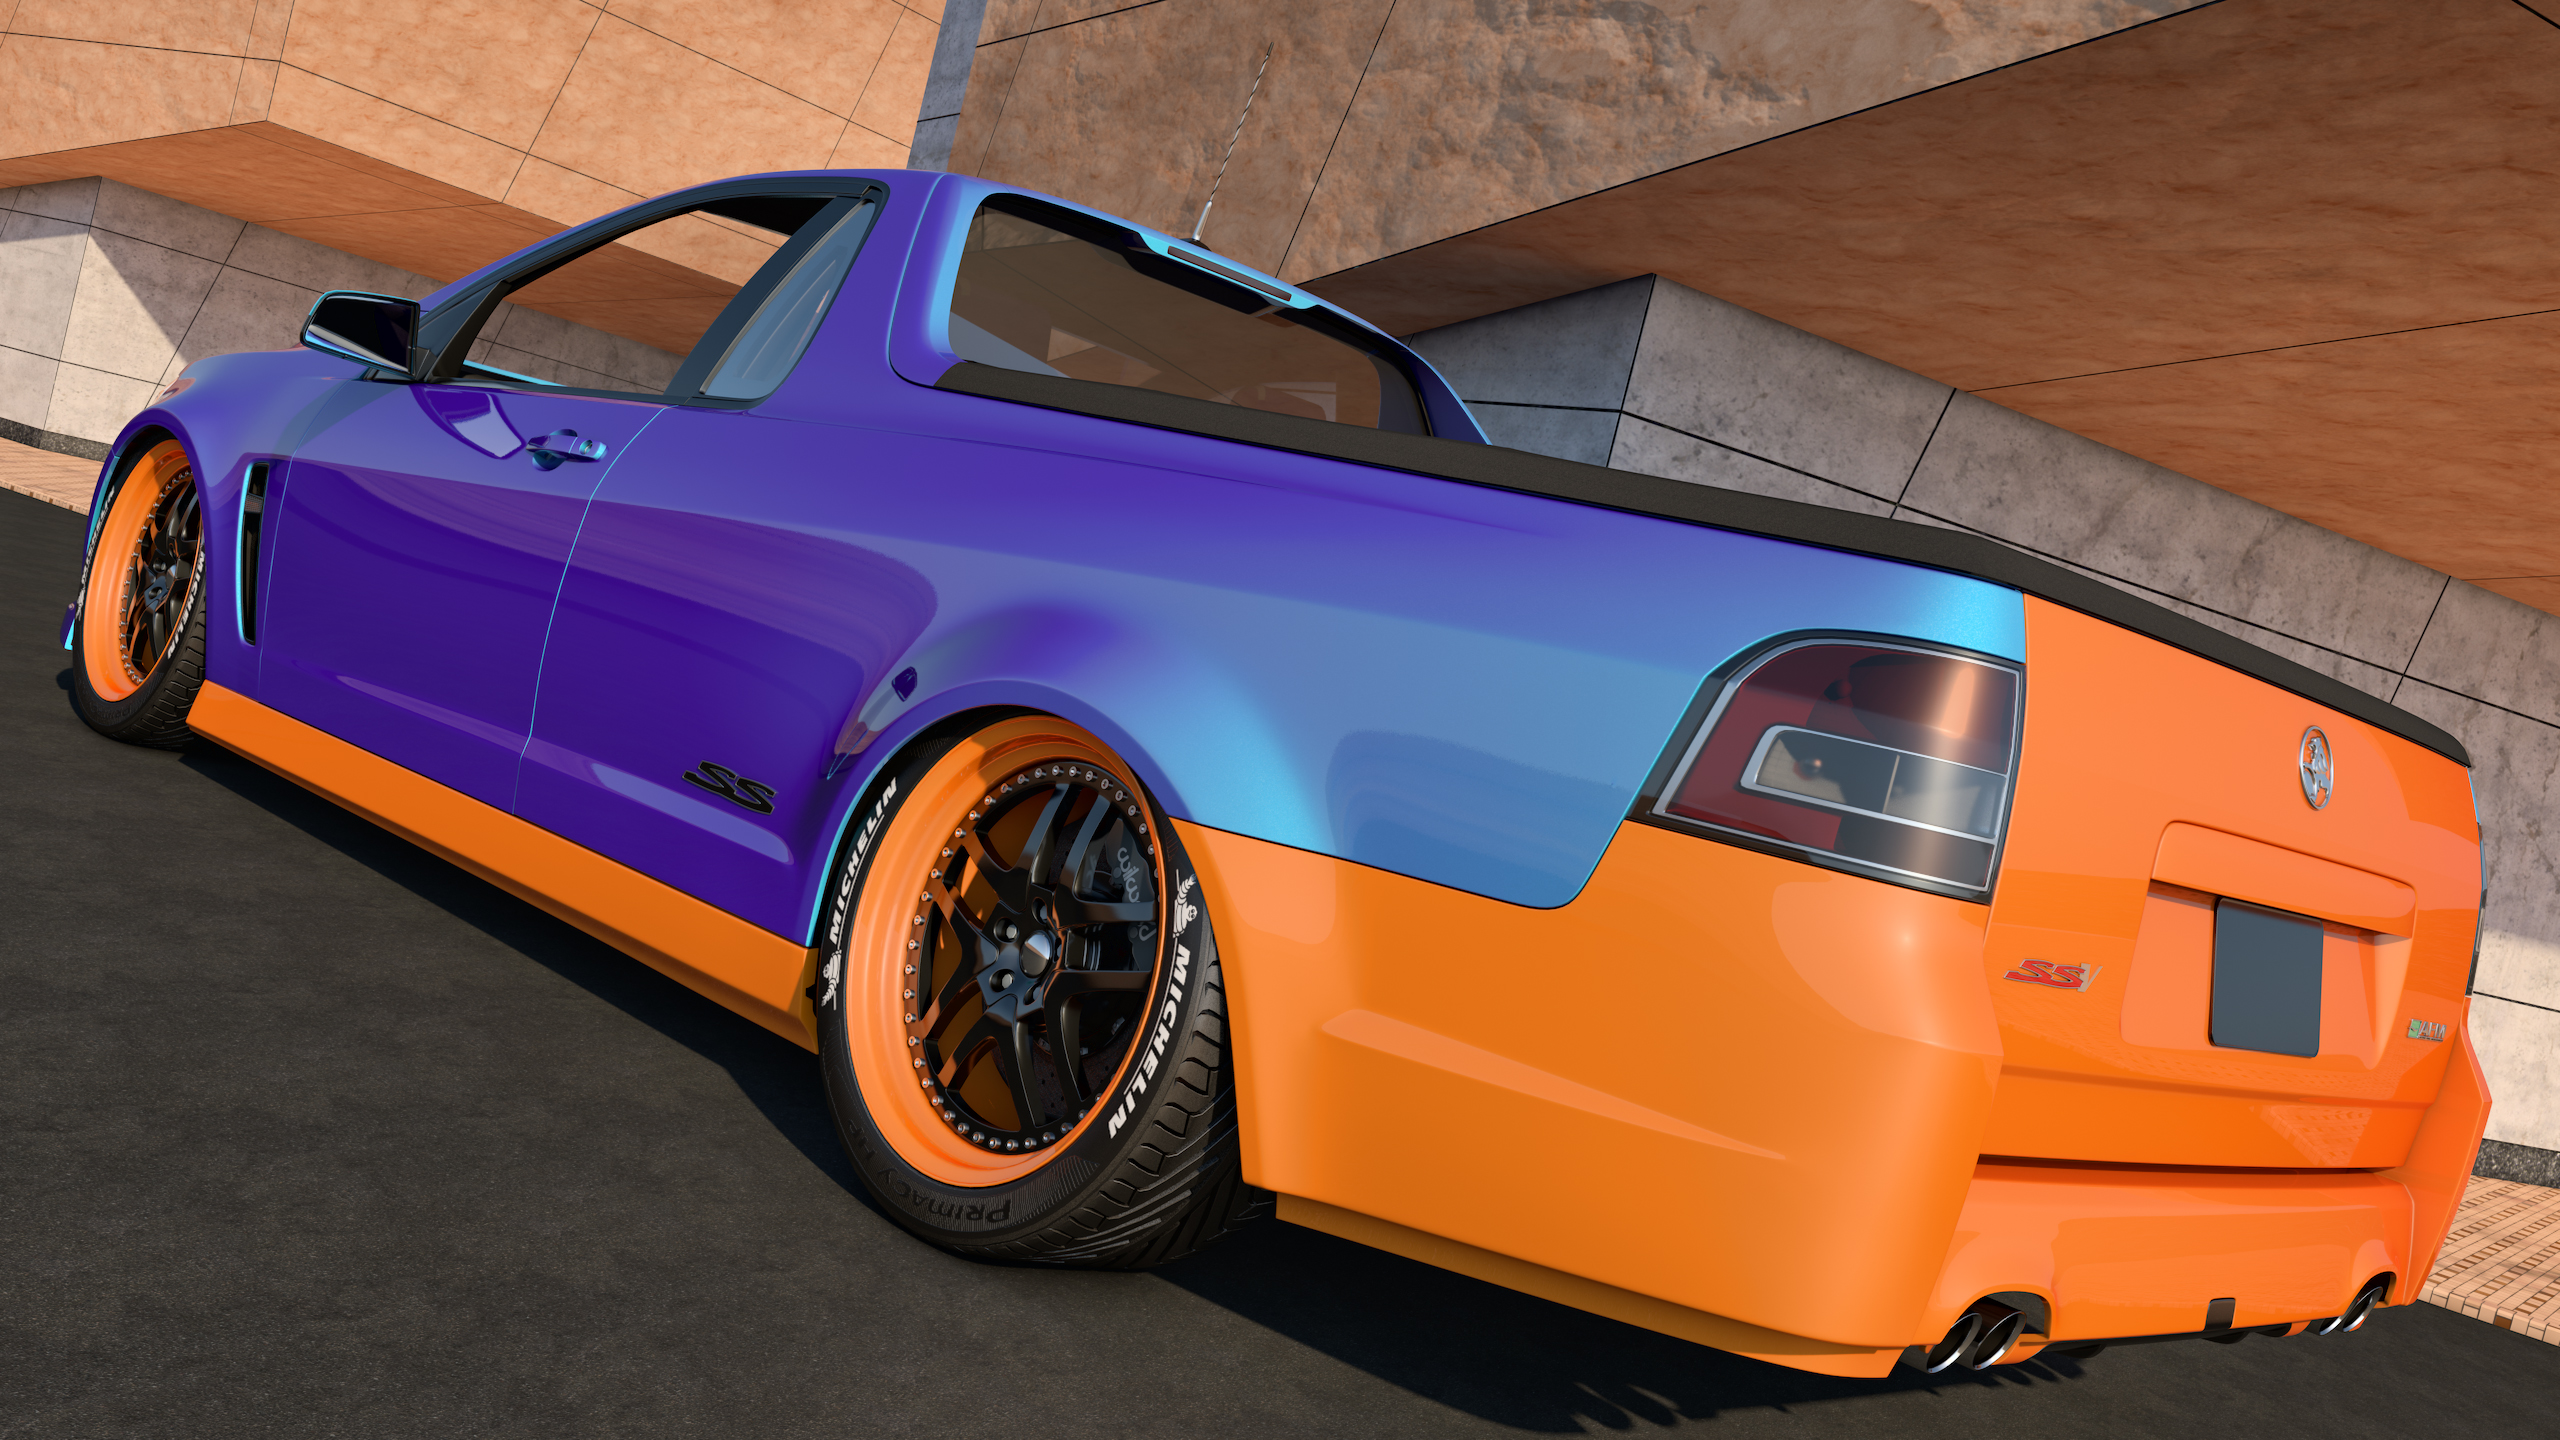 2014 holden vf commodore ute ssv by samcurry on deviantart 2014 holden vf commodore ute ssv by samcurry vanachro Images